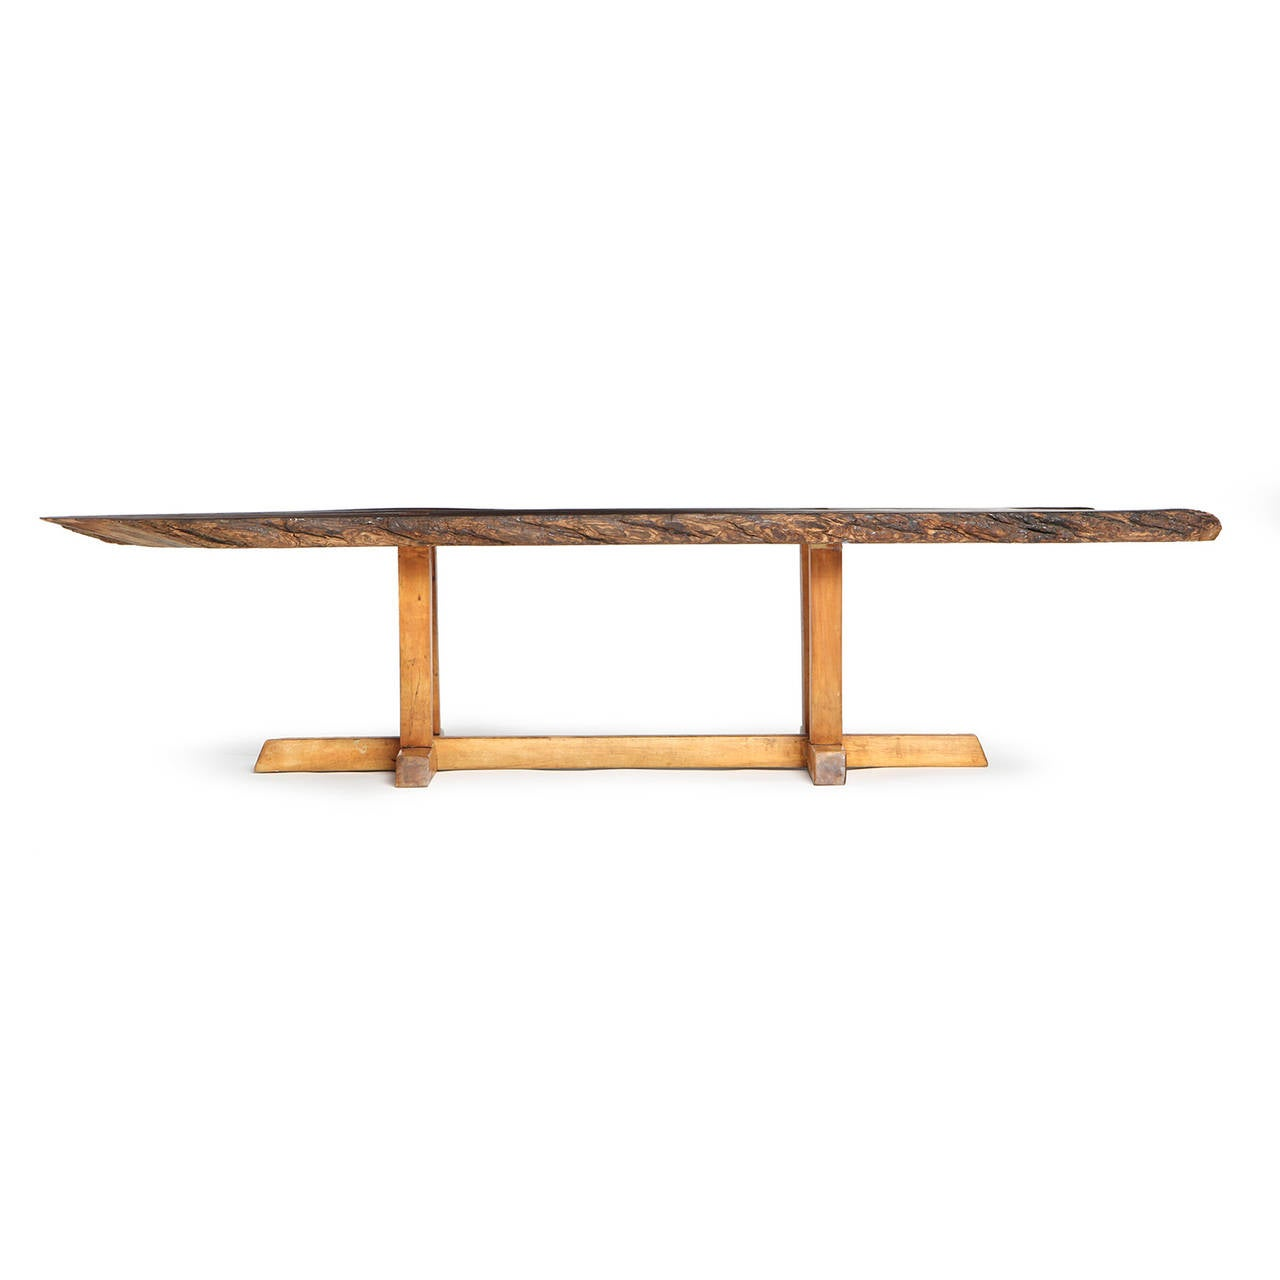 An expressive and finely crafted low table having a live edge walnut top floating on an architectural base.